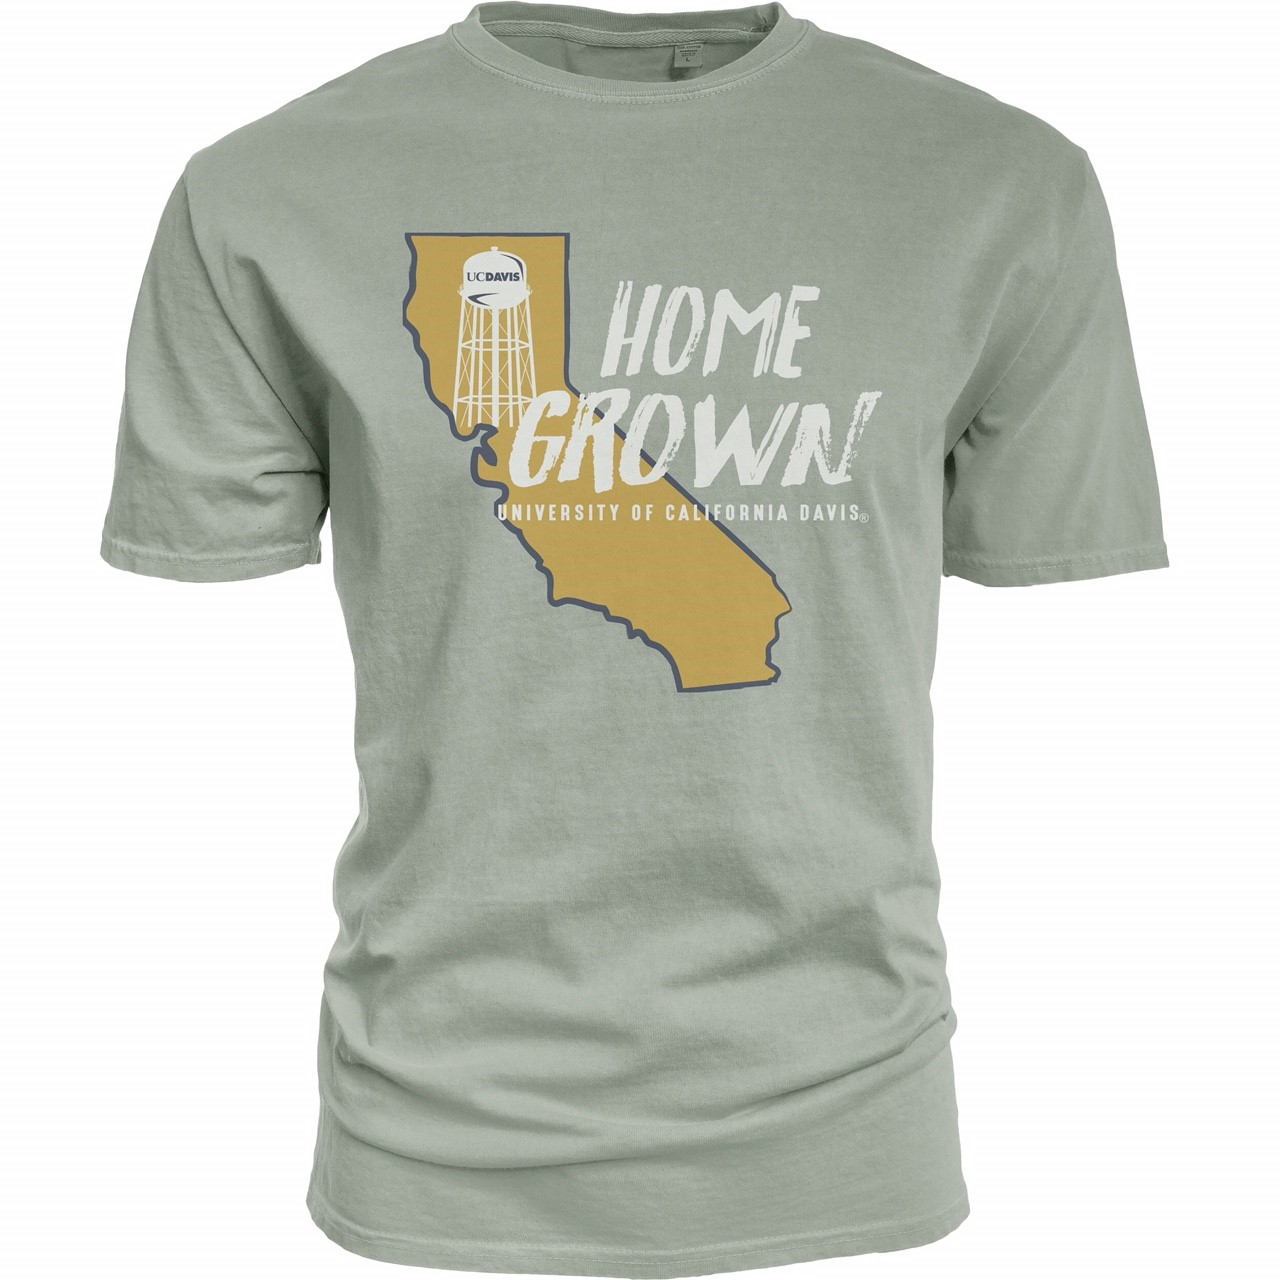 Cover Image For Blue 84 UC Davis Home Grown T-Shirt Jade